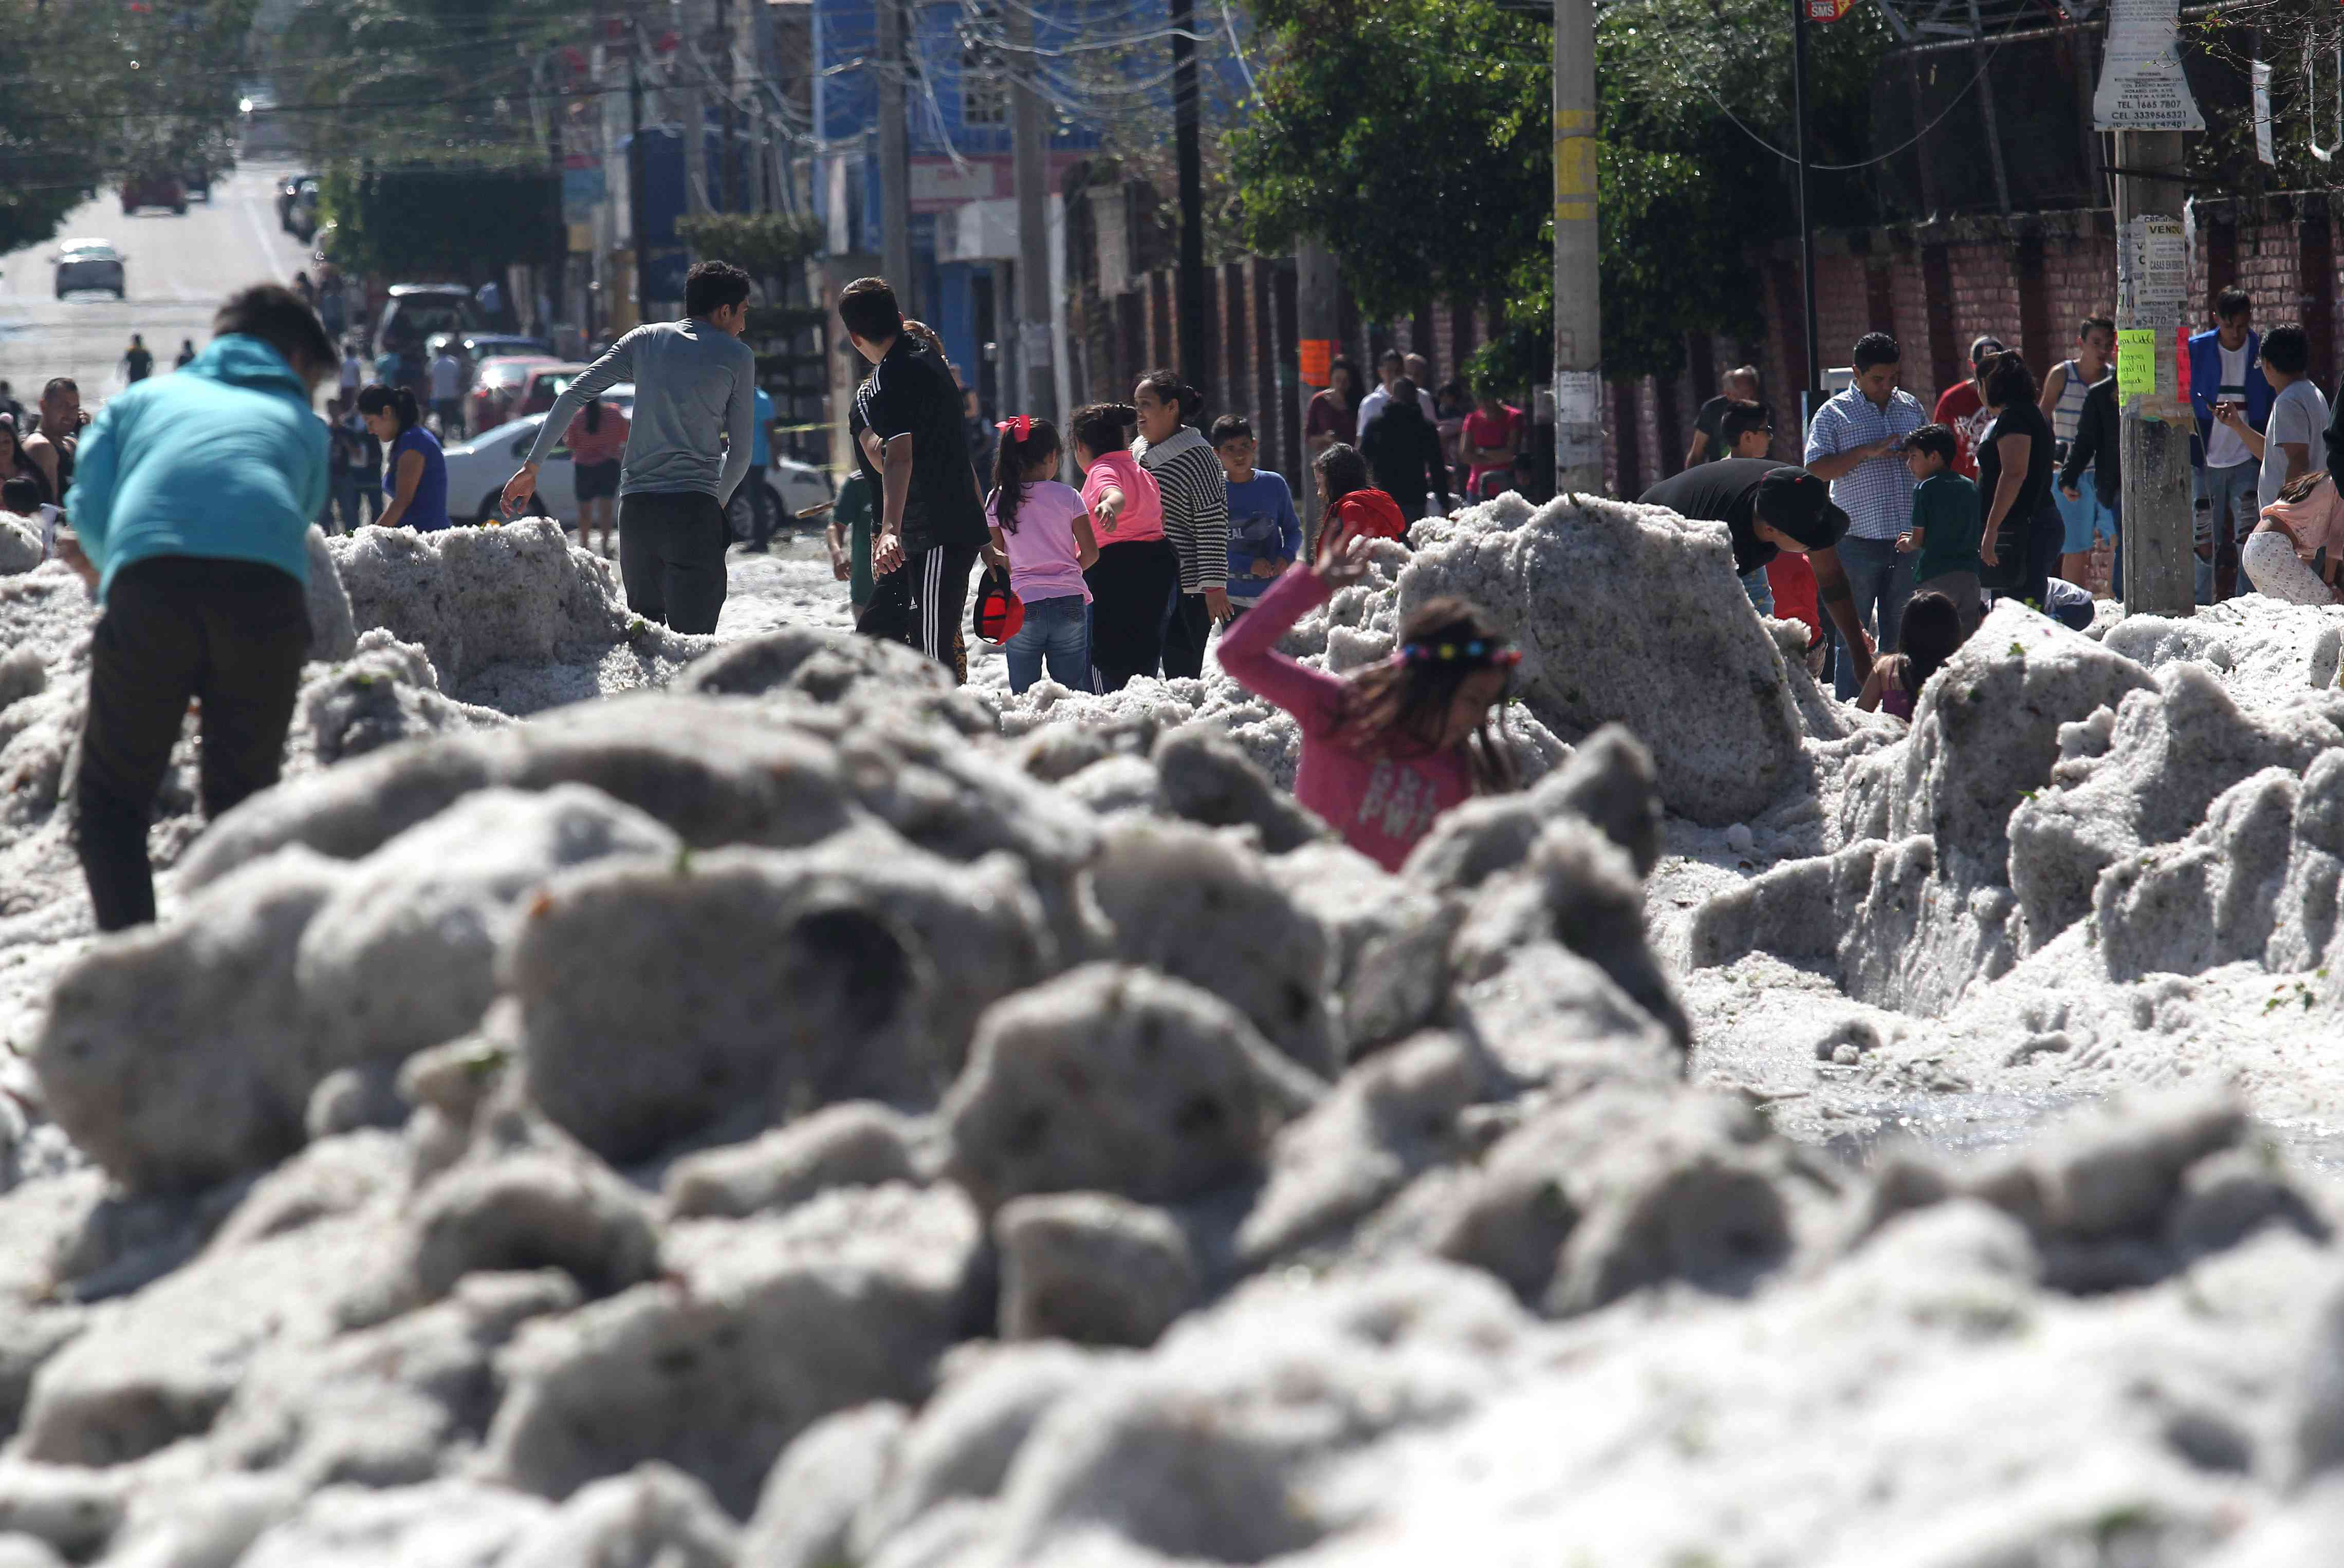 A freak hail storm on Sunday struck Guadalajara, one of Mexico's most populous cities